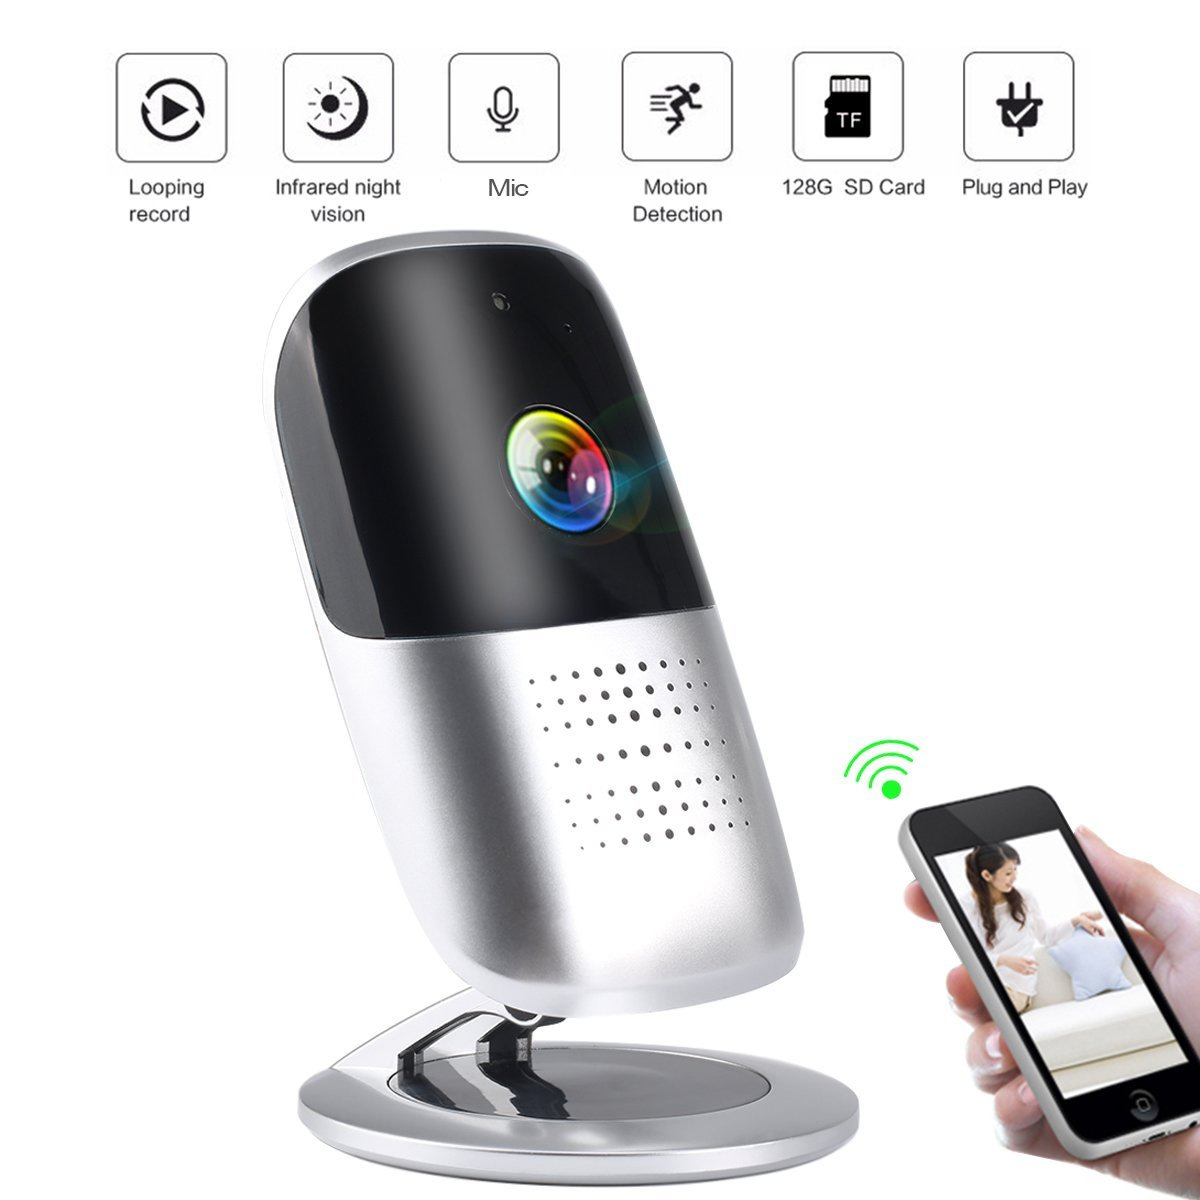 1080P HD IP Wireless Monitoring Security Camera with Night Vision, Two Way Audio, and Cloud Recording for Home Baby Safety